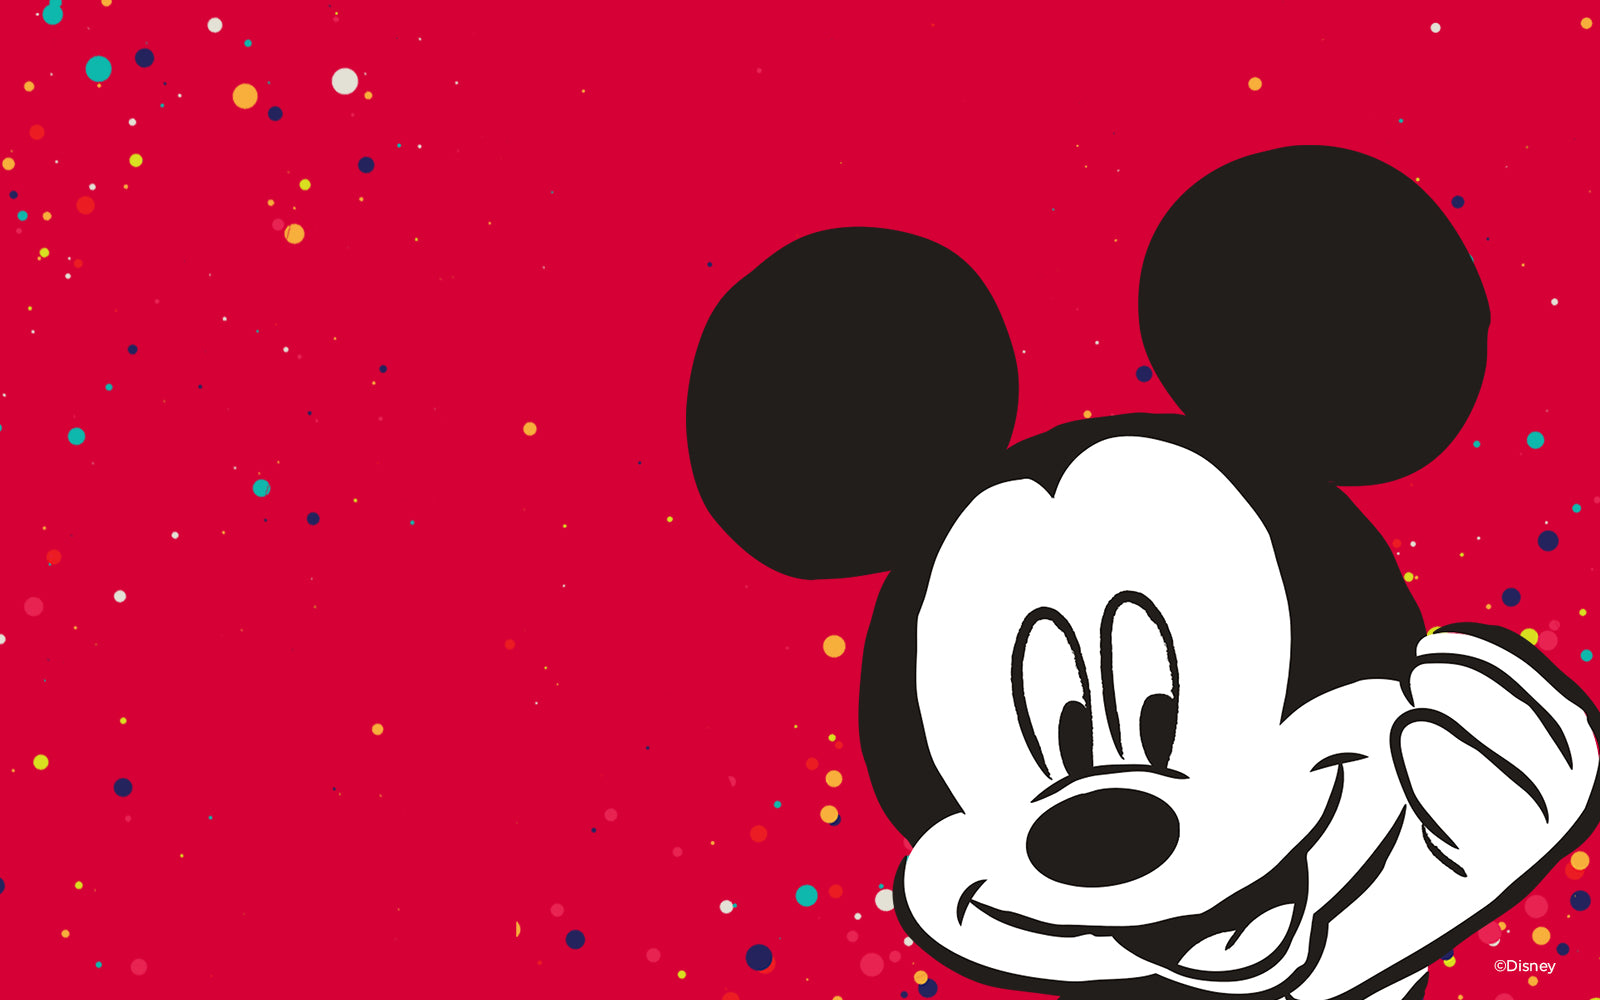 HAPPY 90TH BIRTHDAY<br> MICKEY MOUSE!